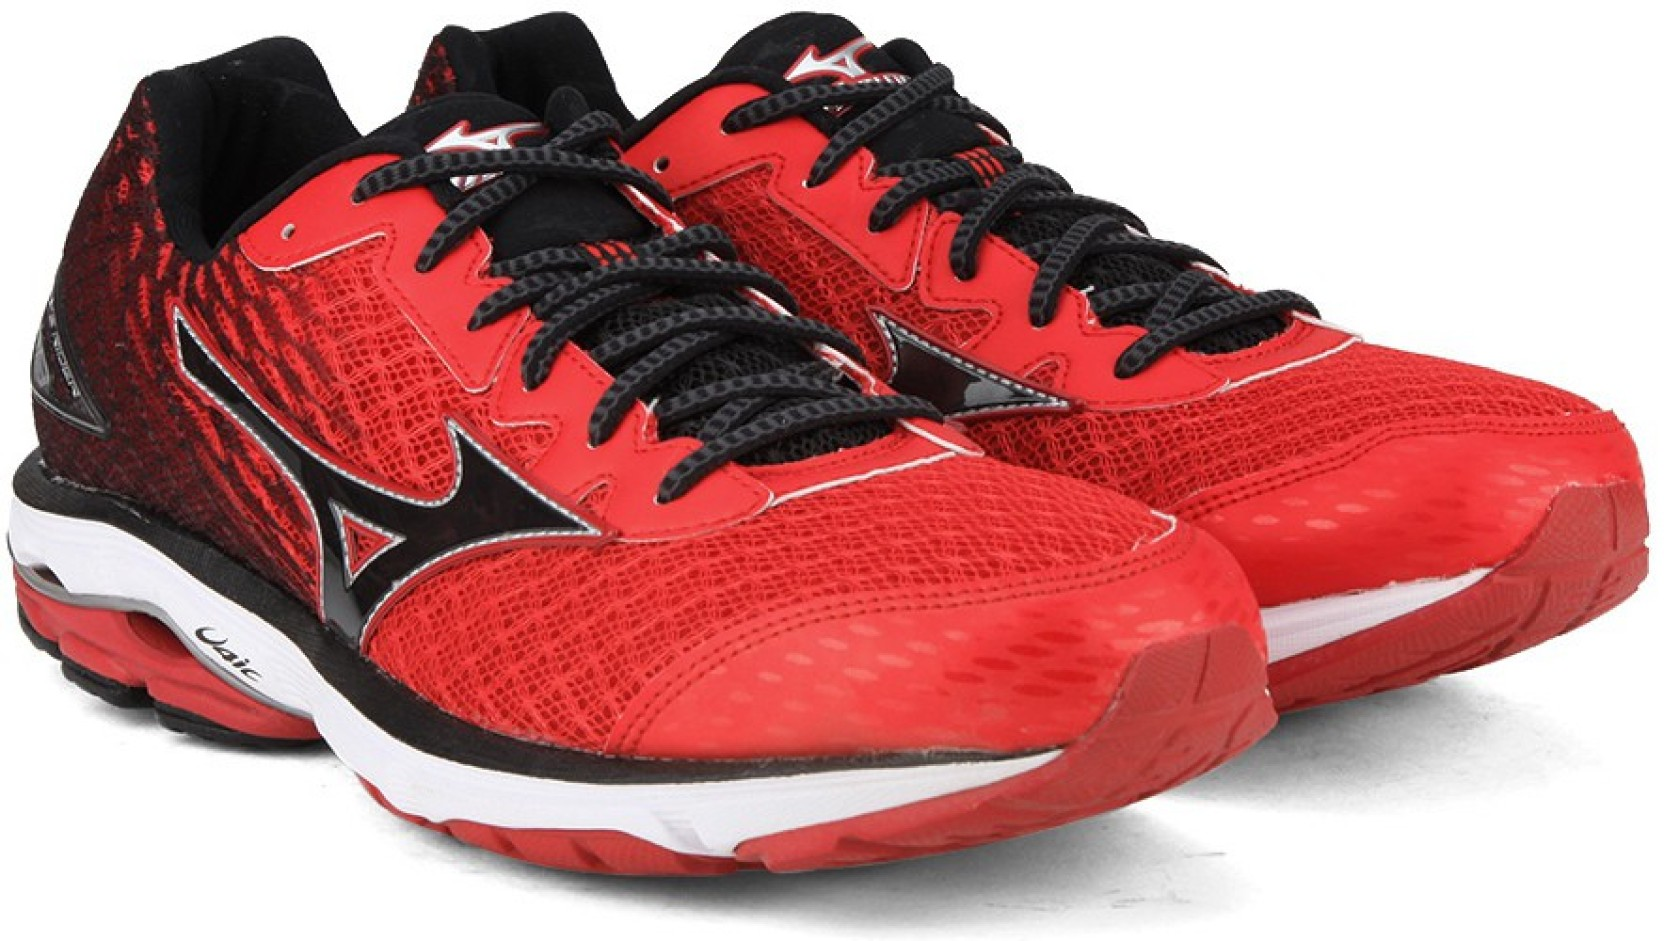 075aef955c98 Mizuno WAVE RIDER 19 Running Shoes For Men - Buy Chinese Red / Black ...